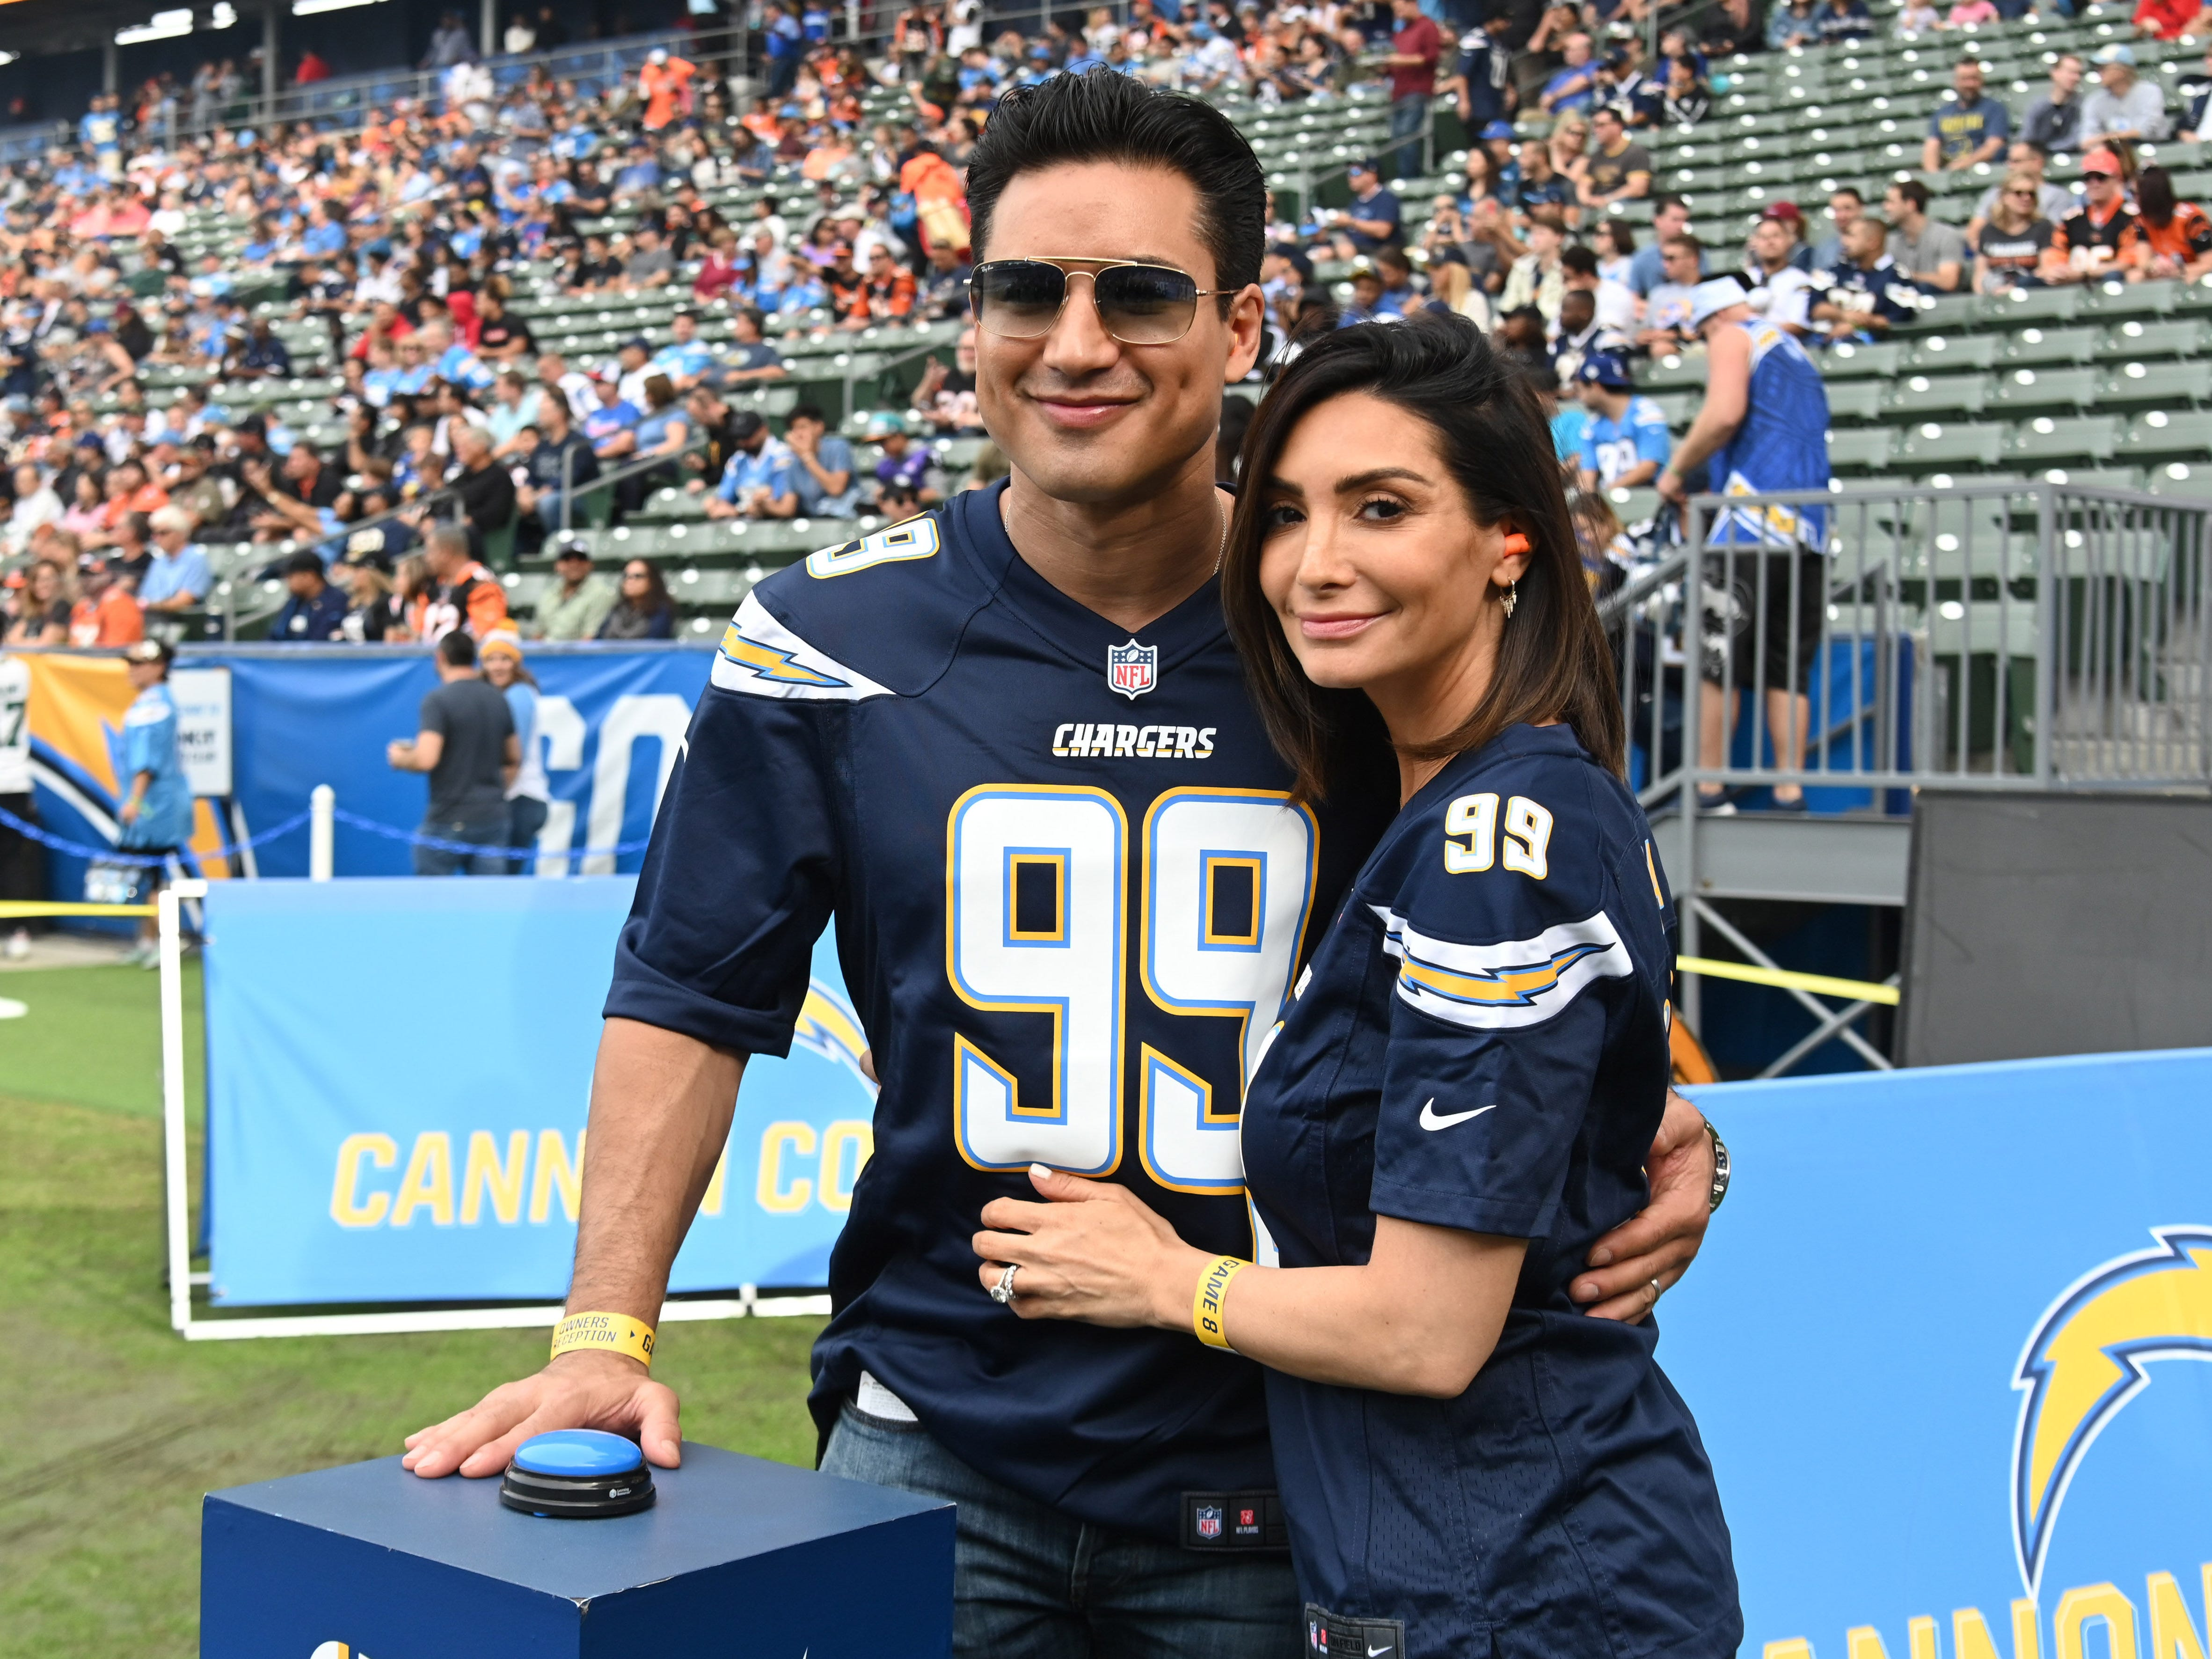 Television personality Mario Lopez and wife Courtney Lopez pose during the game between the Cincinnati Bengals and the Los Angeles Chargers at StubHub Center.